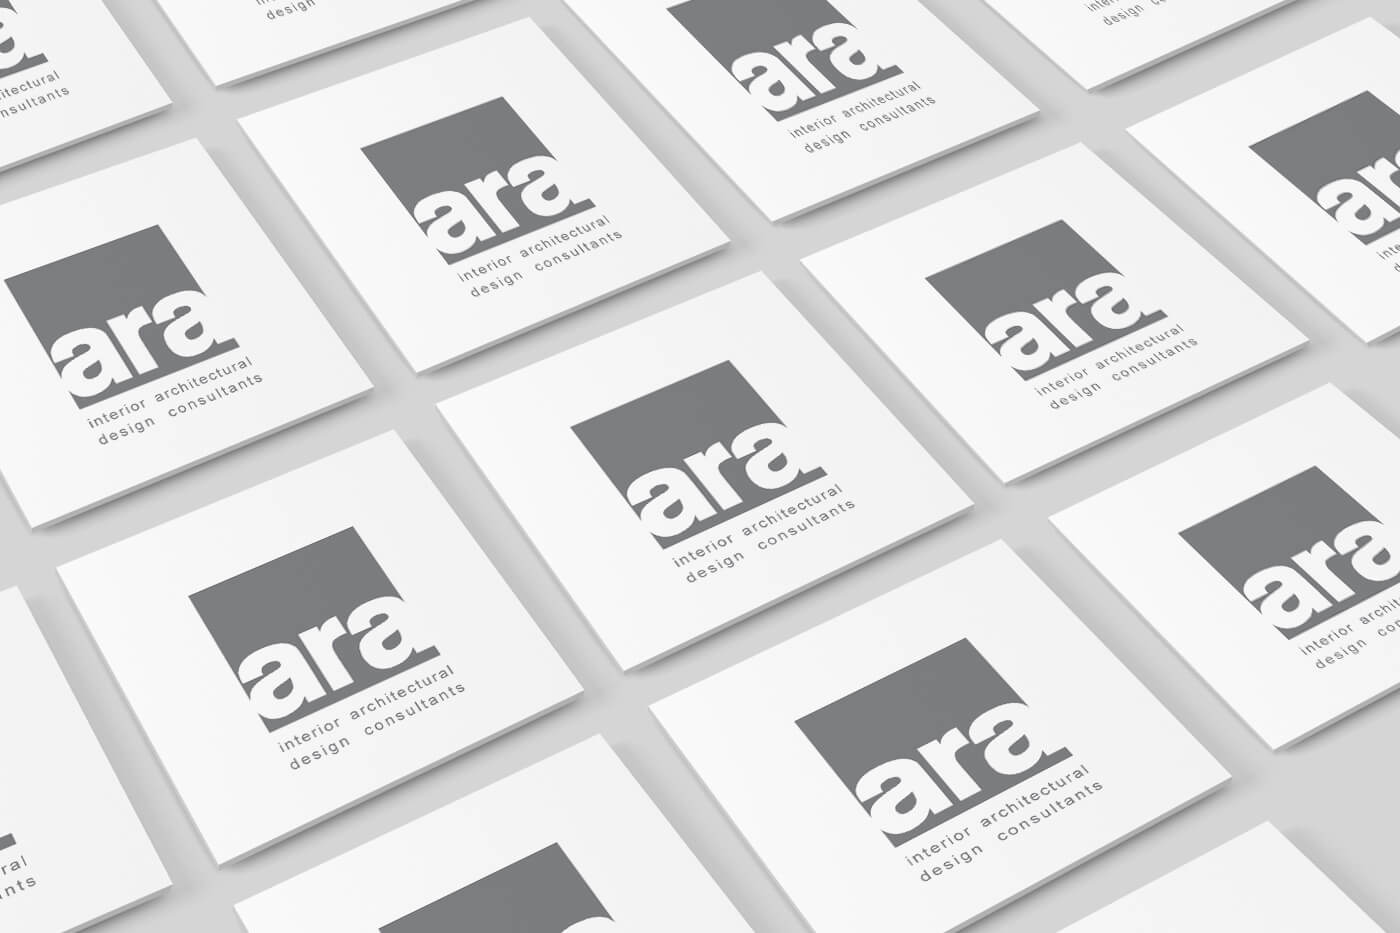 monginigraphics - ara design business cards